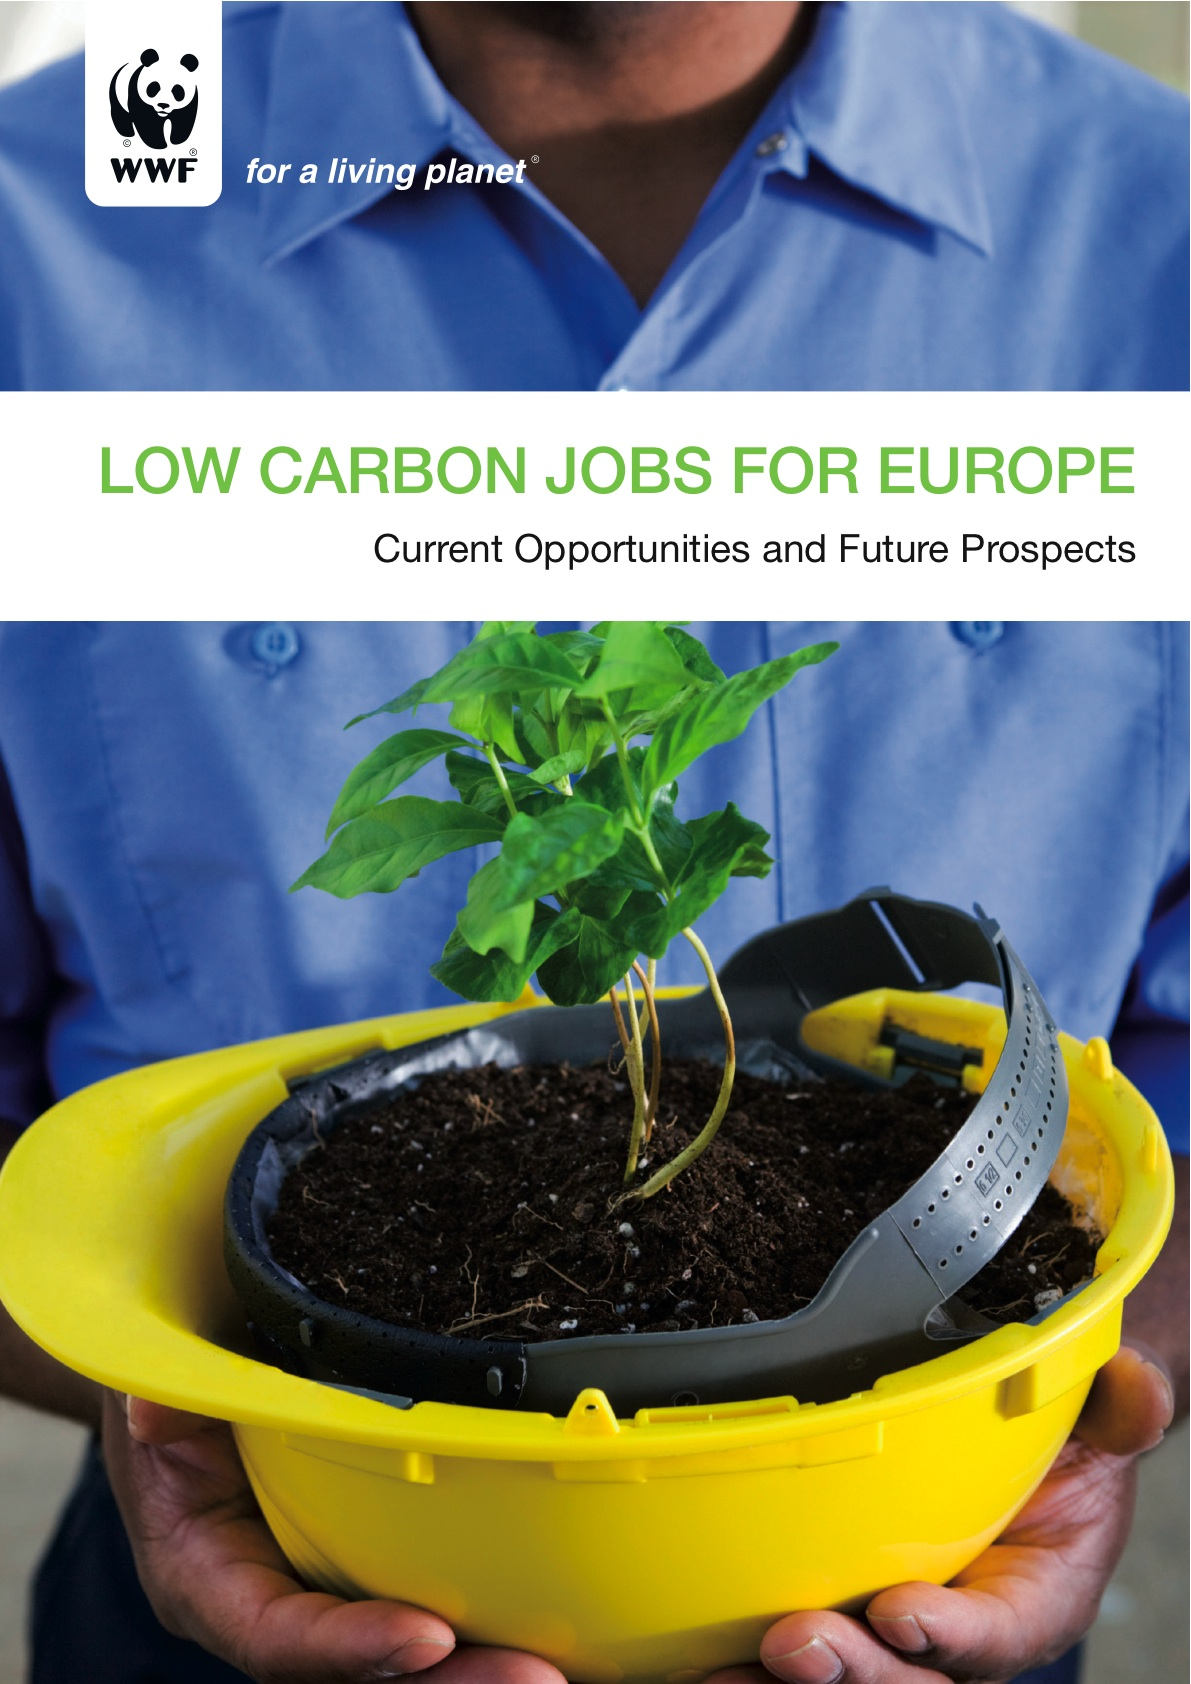 Low Carbon Jobs by WWF